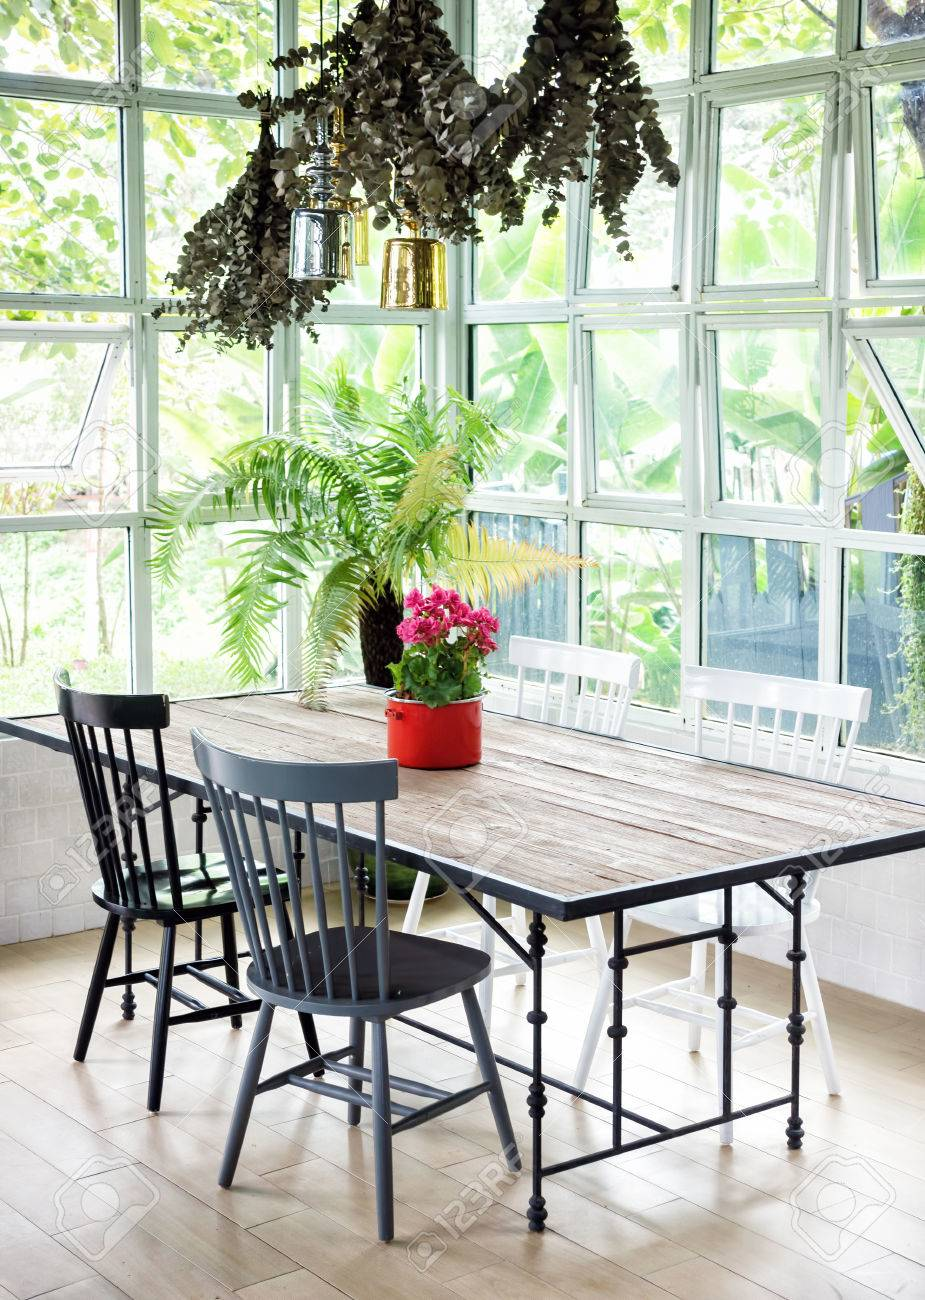 Dining Room Interior With Table Chairs And Plants Against Big Stock Photo Picture And Royalty Free Image Image 77301613